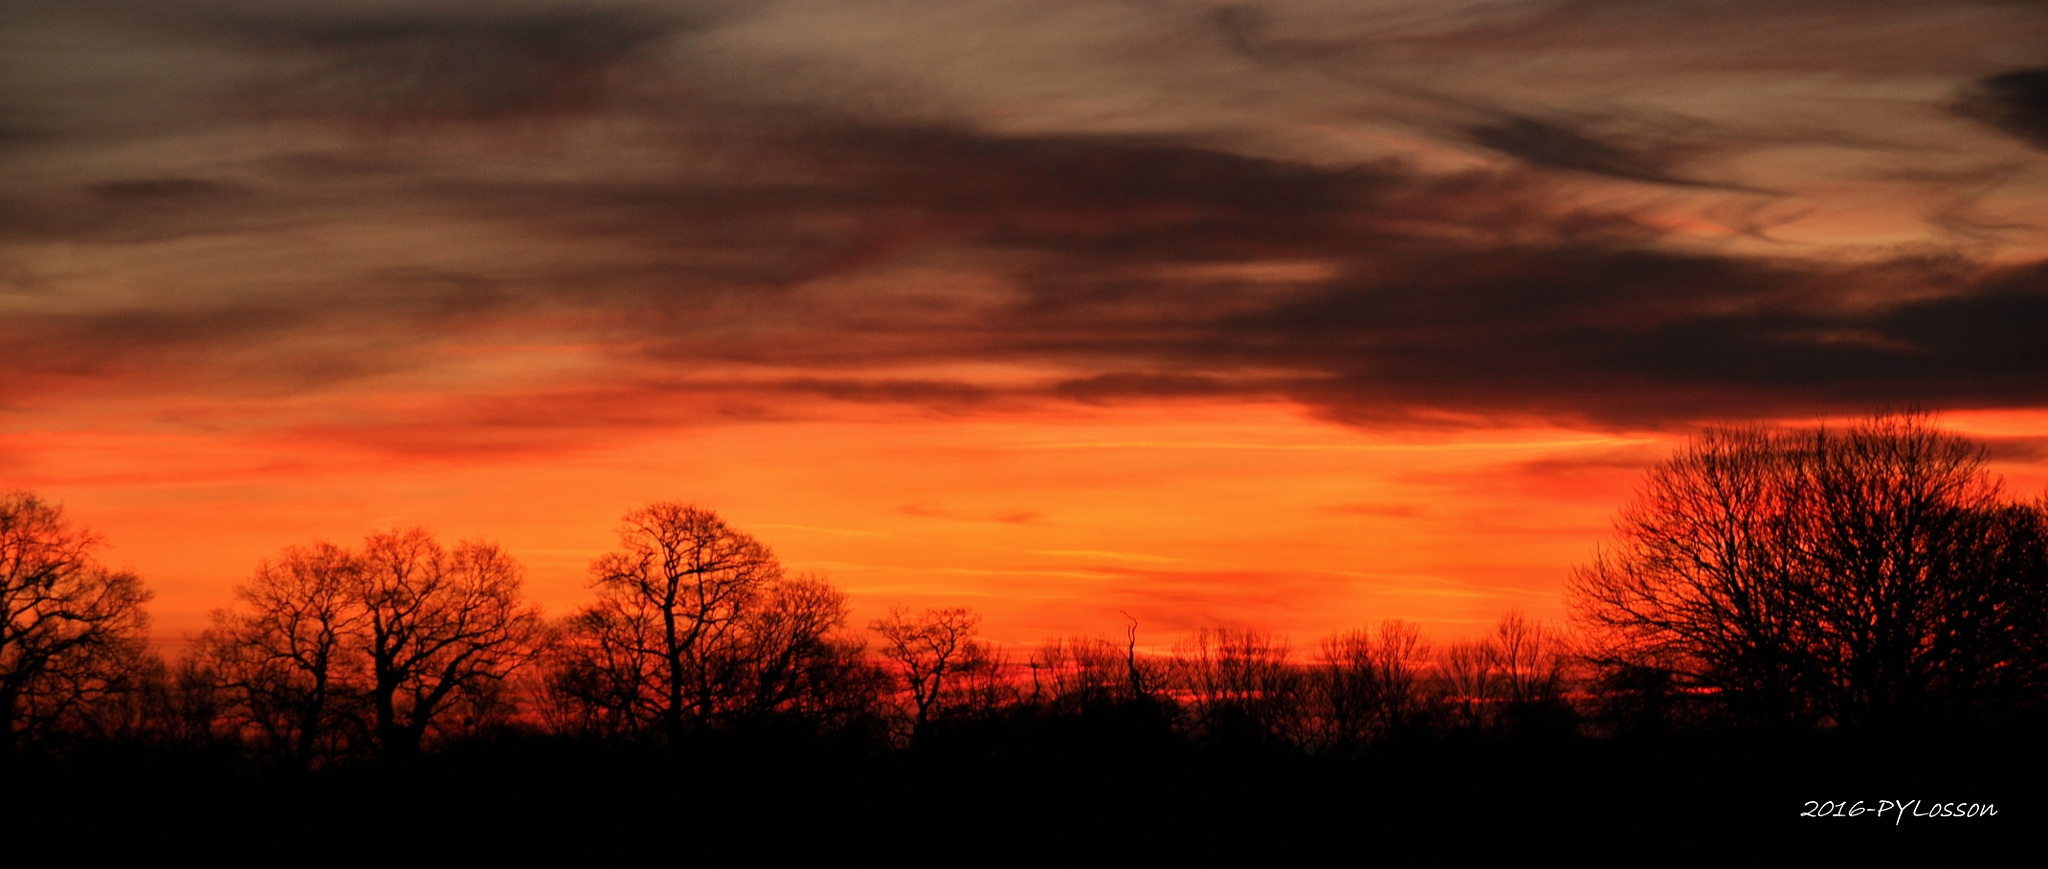 First light oh french winter sunset !!! by Pierre-Yves Losson